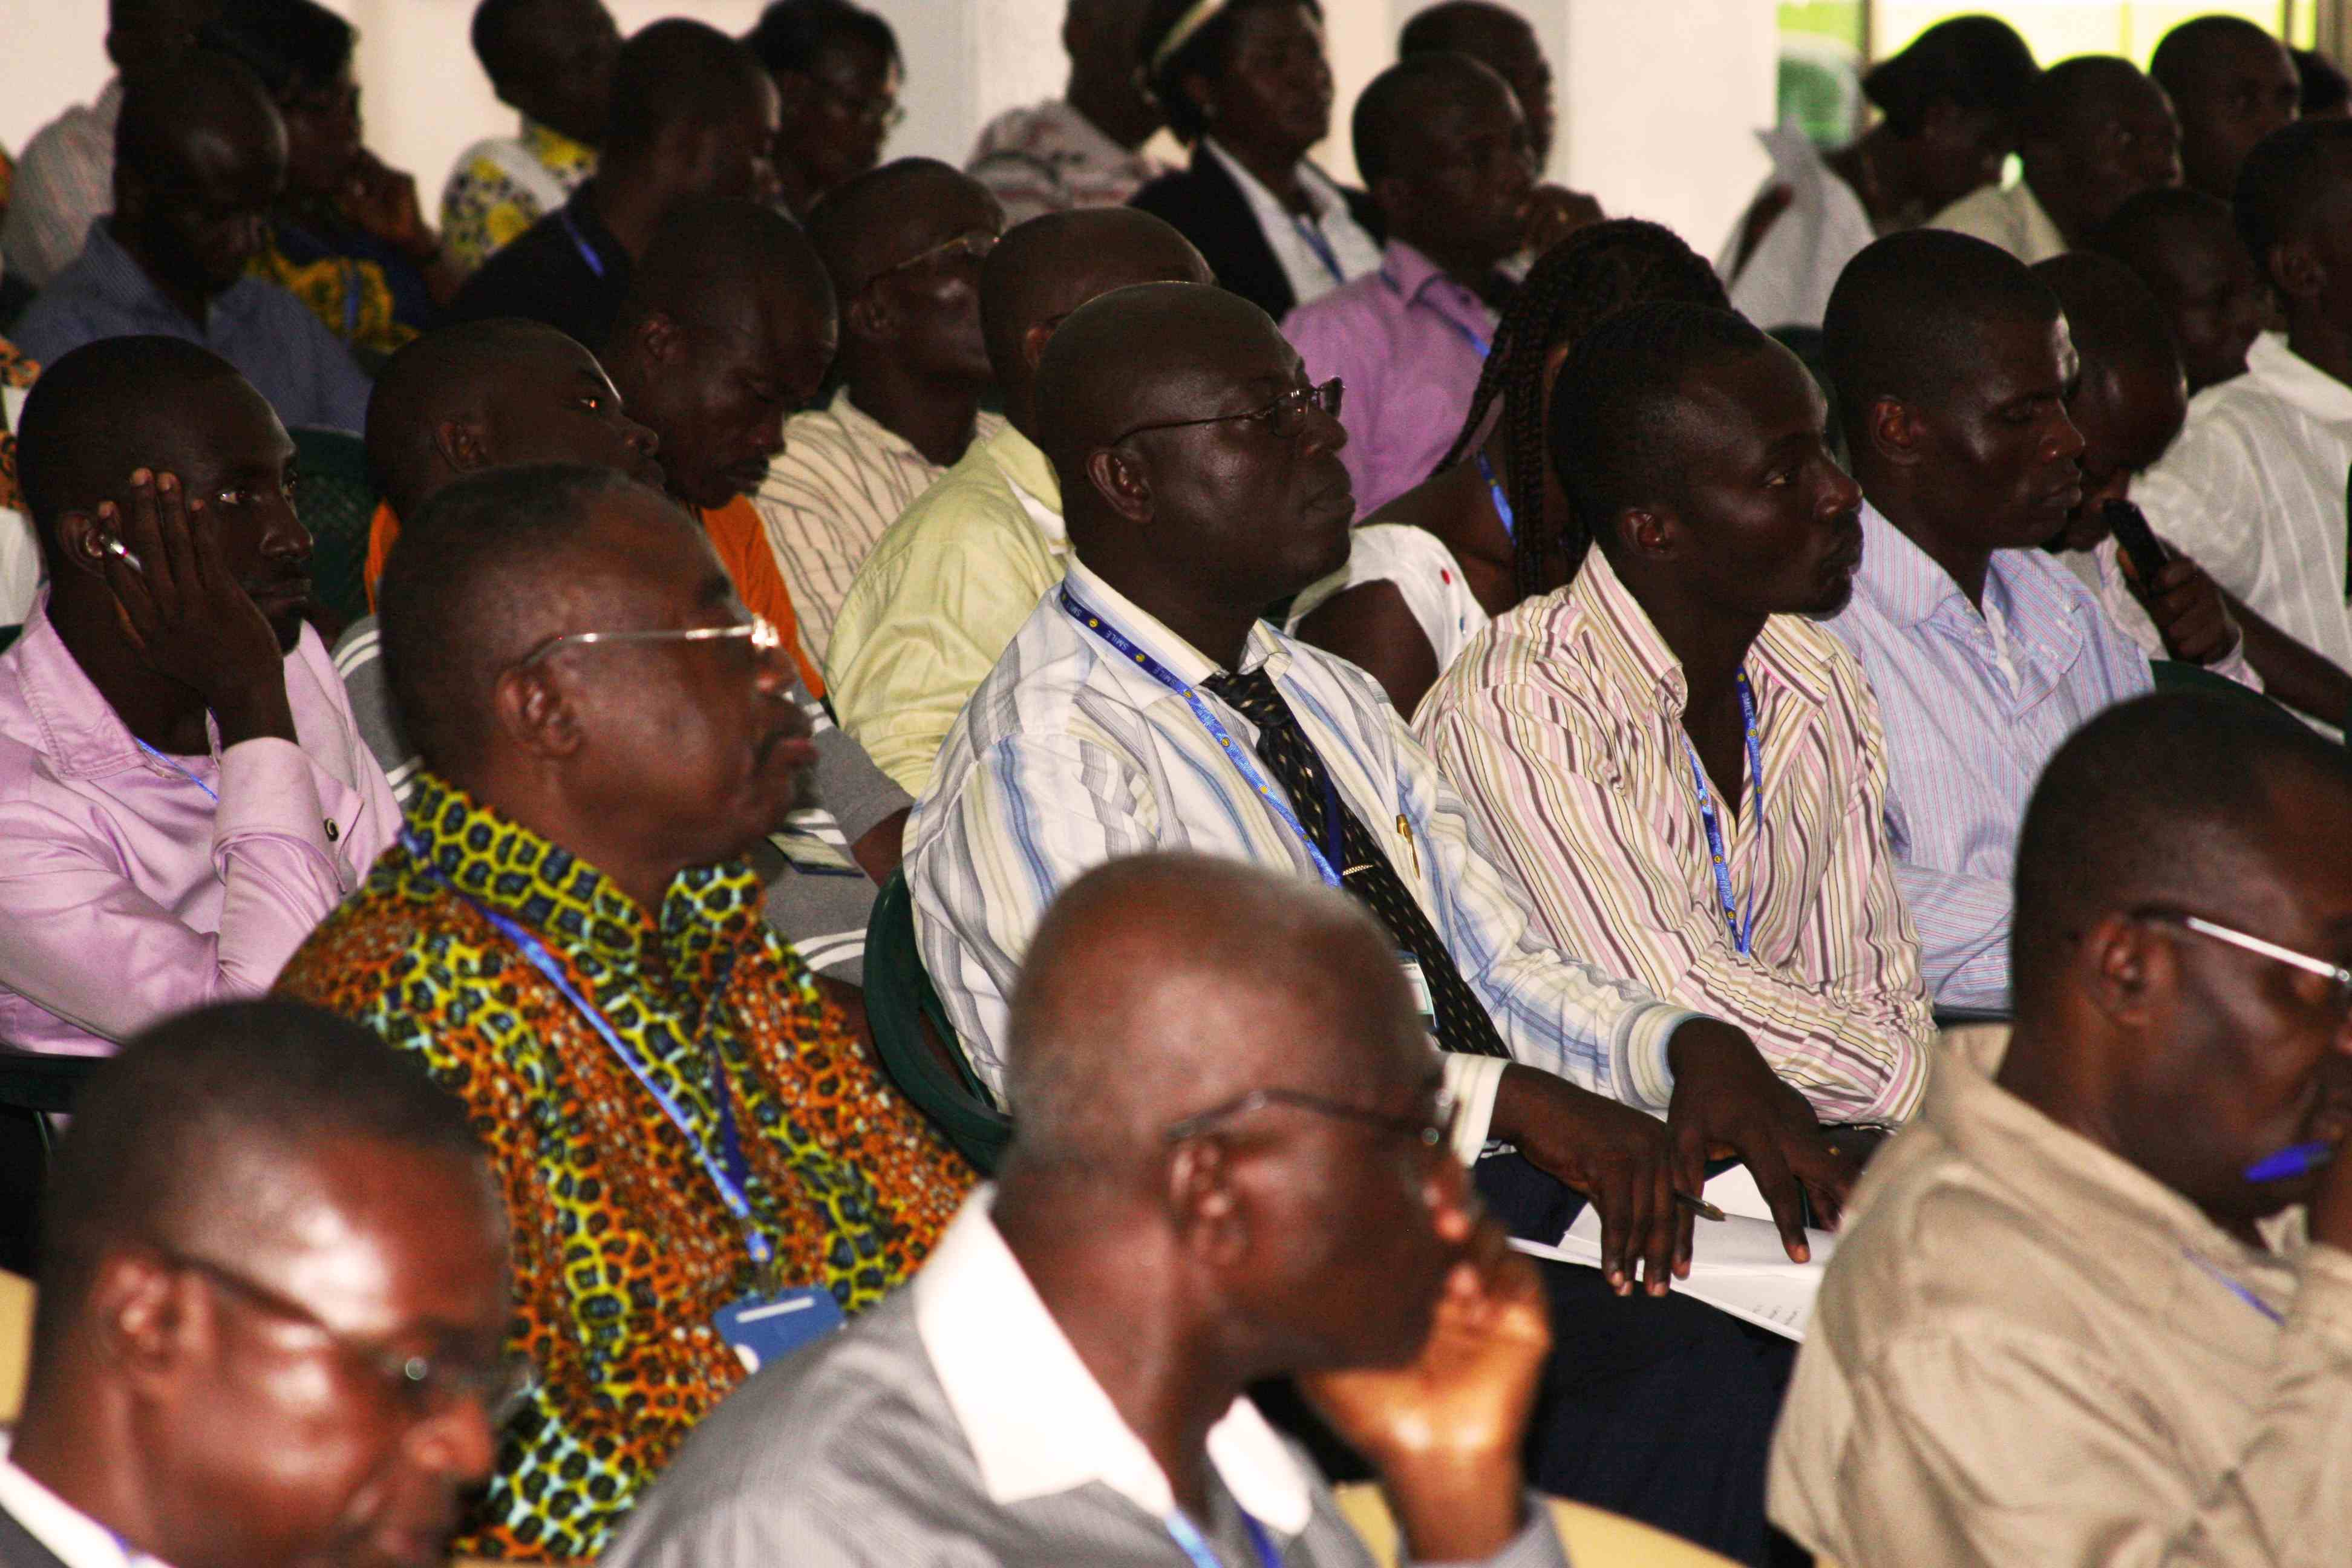 Terrorism in Africa discourages church leaders